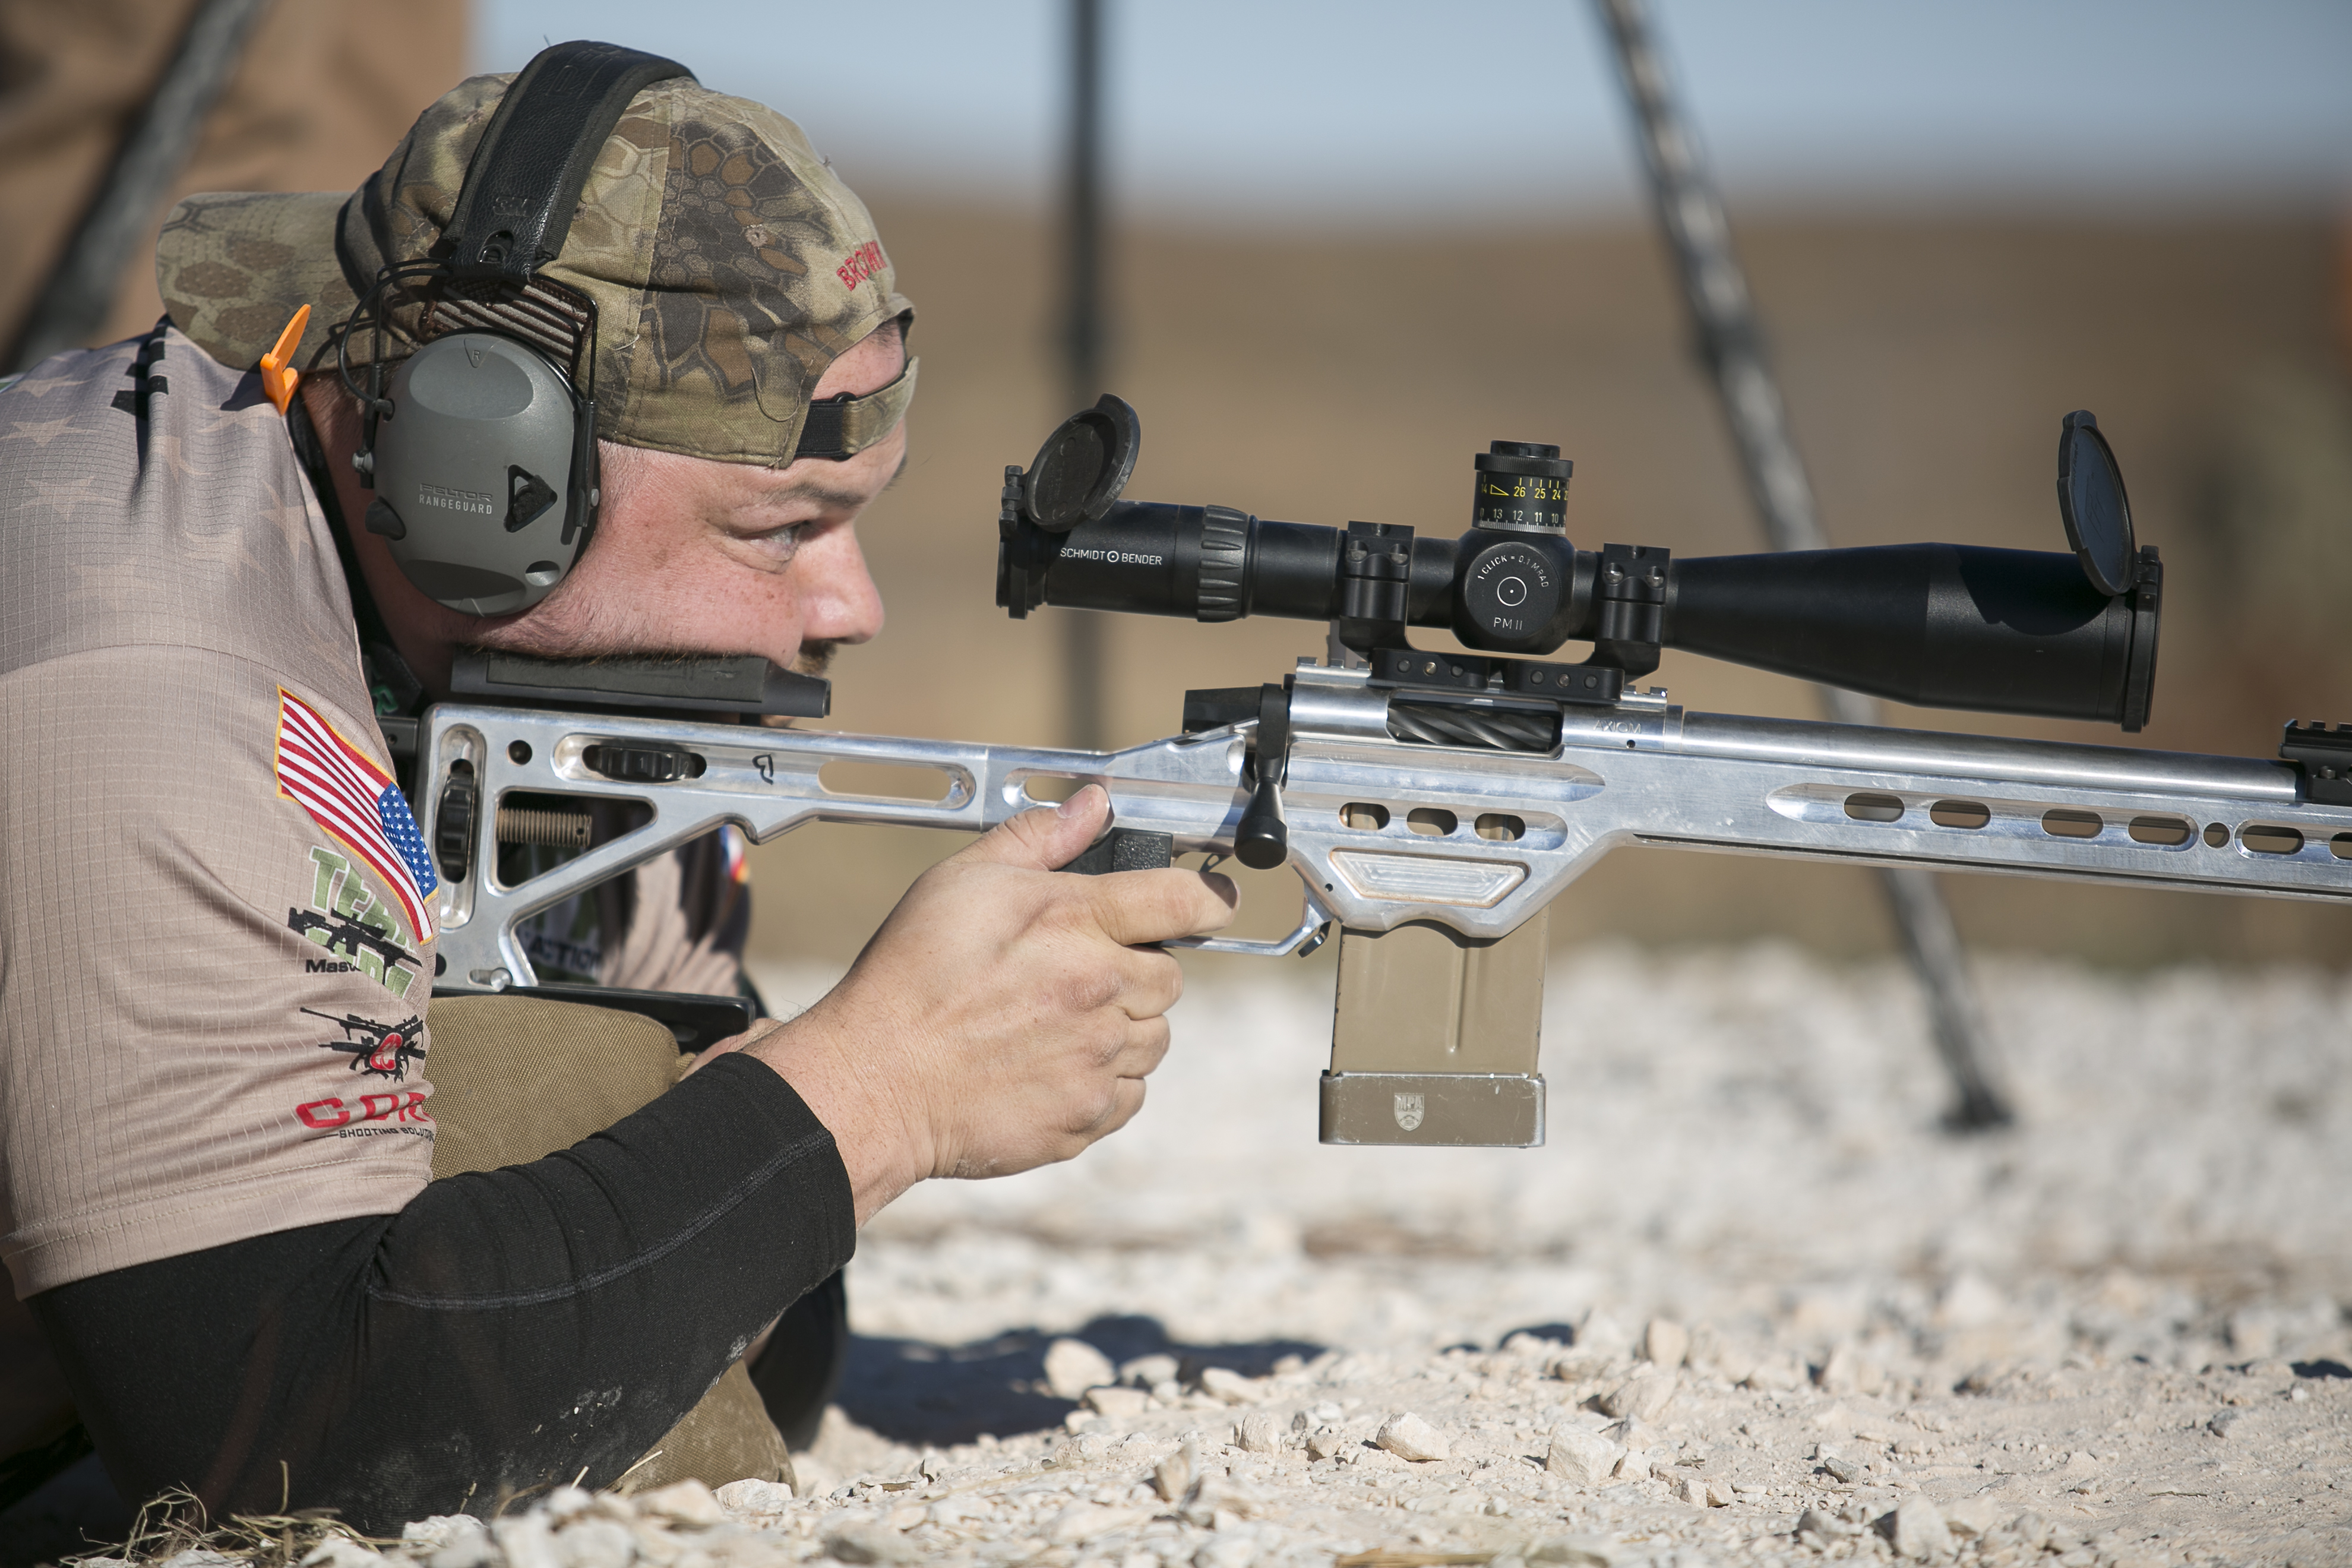 Trinity Brown Joins MasterPiece Arms as Law Enforcement / Military Sales Coordinator